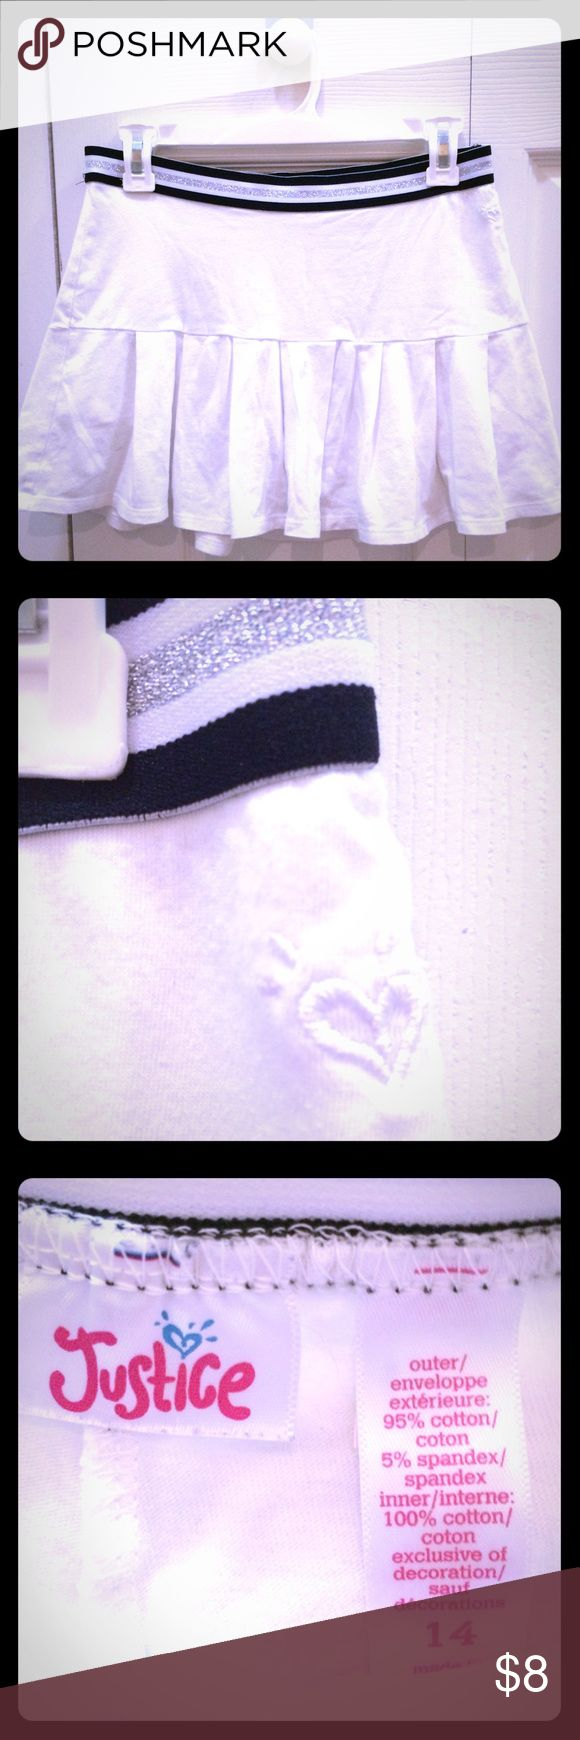 Justice white mini skirt Justice white mini skirt, has shorts build in, size 14, great condition Justice Skirts Mini